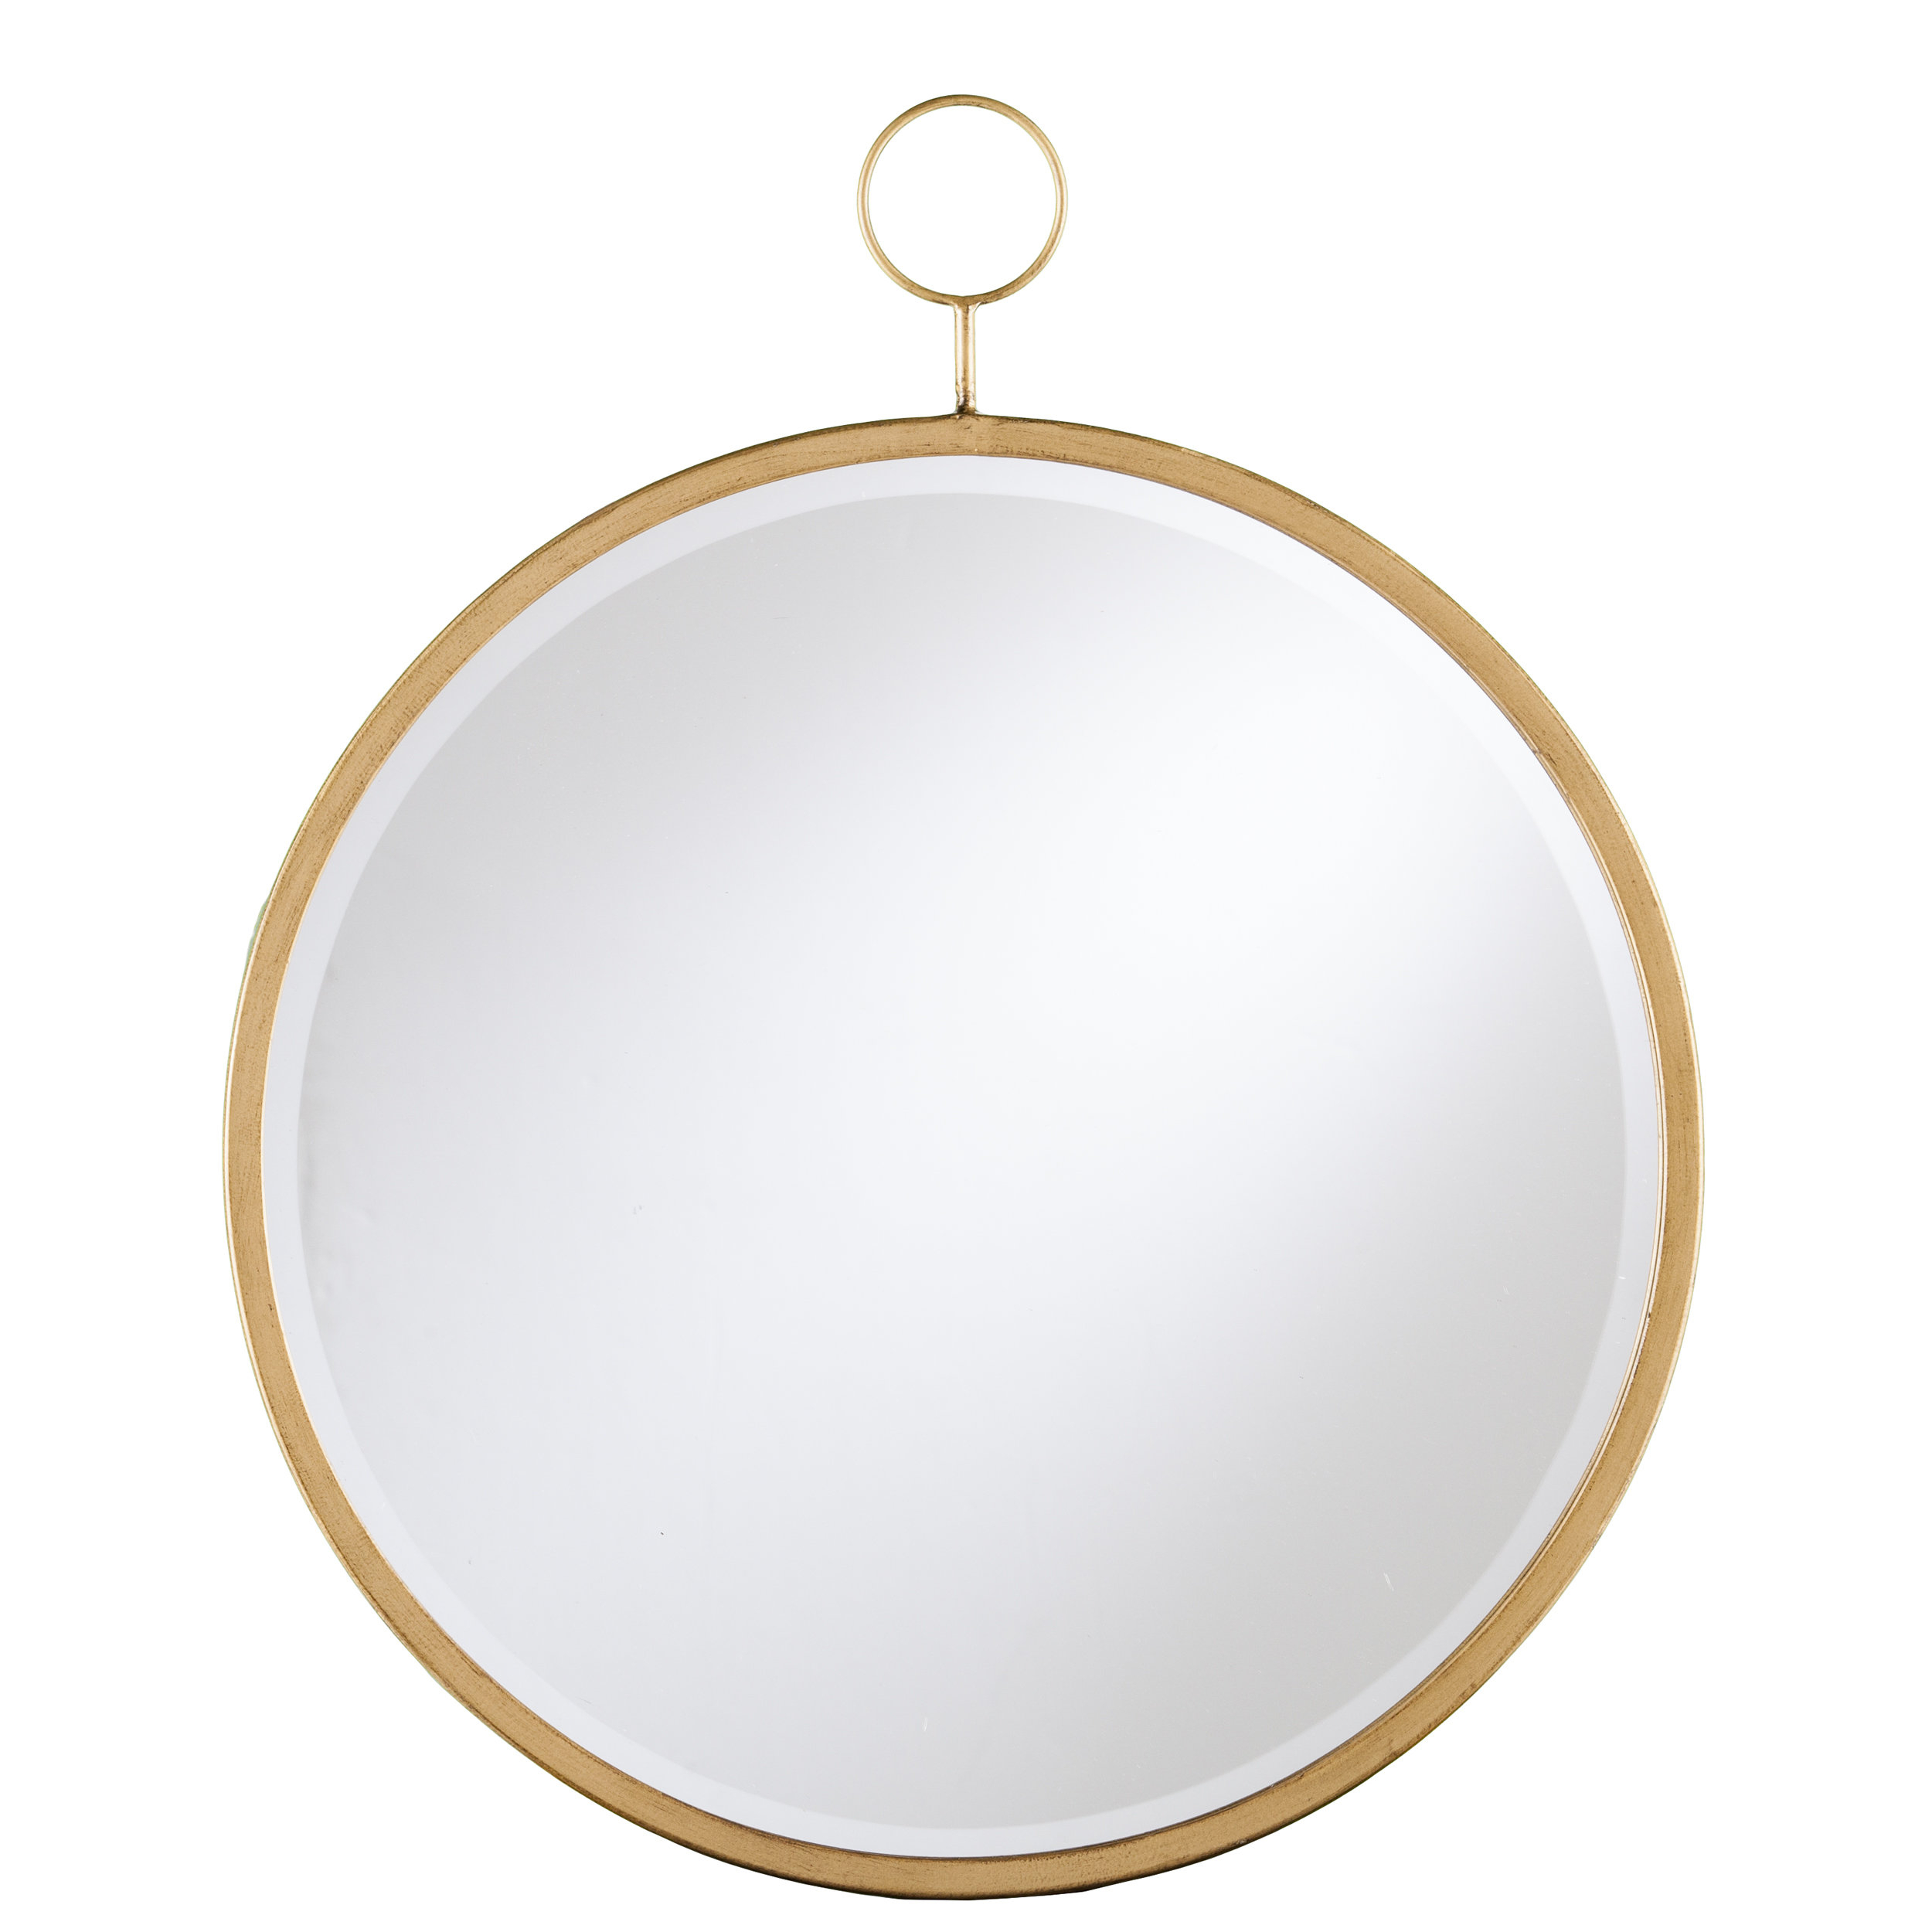 Mistana Accent Mirror & Reviews | Wayfair With Regard To Kinley Accent Mirrors (Image 14 of 20)